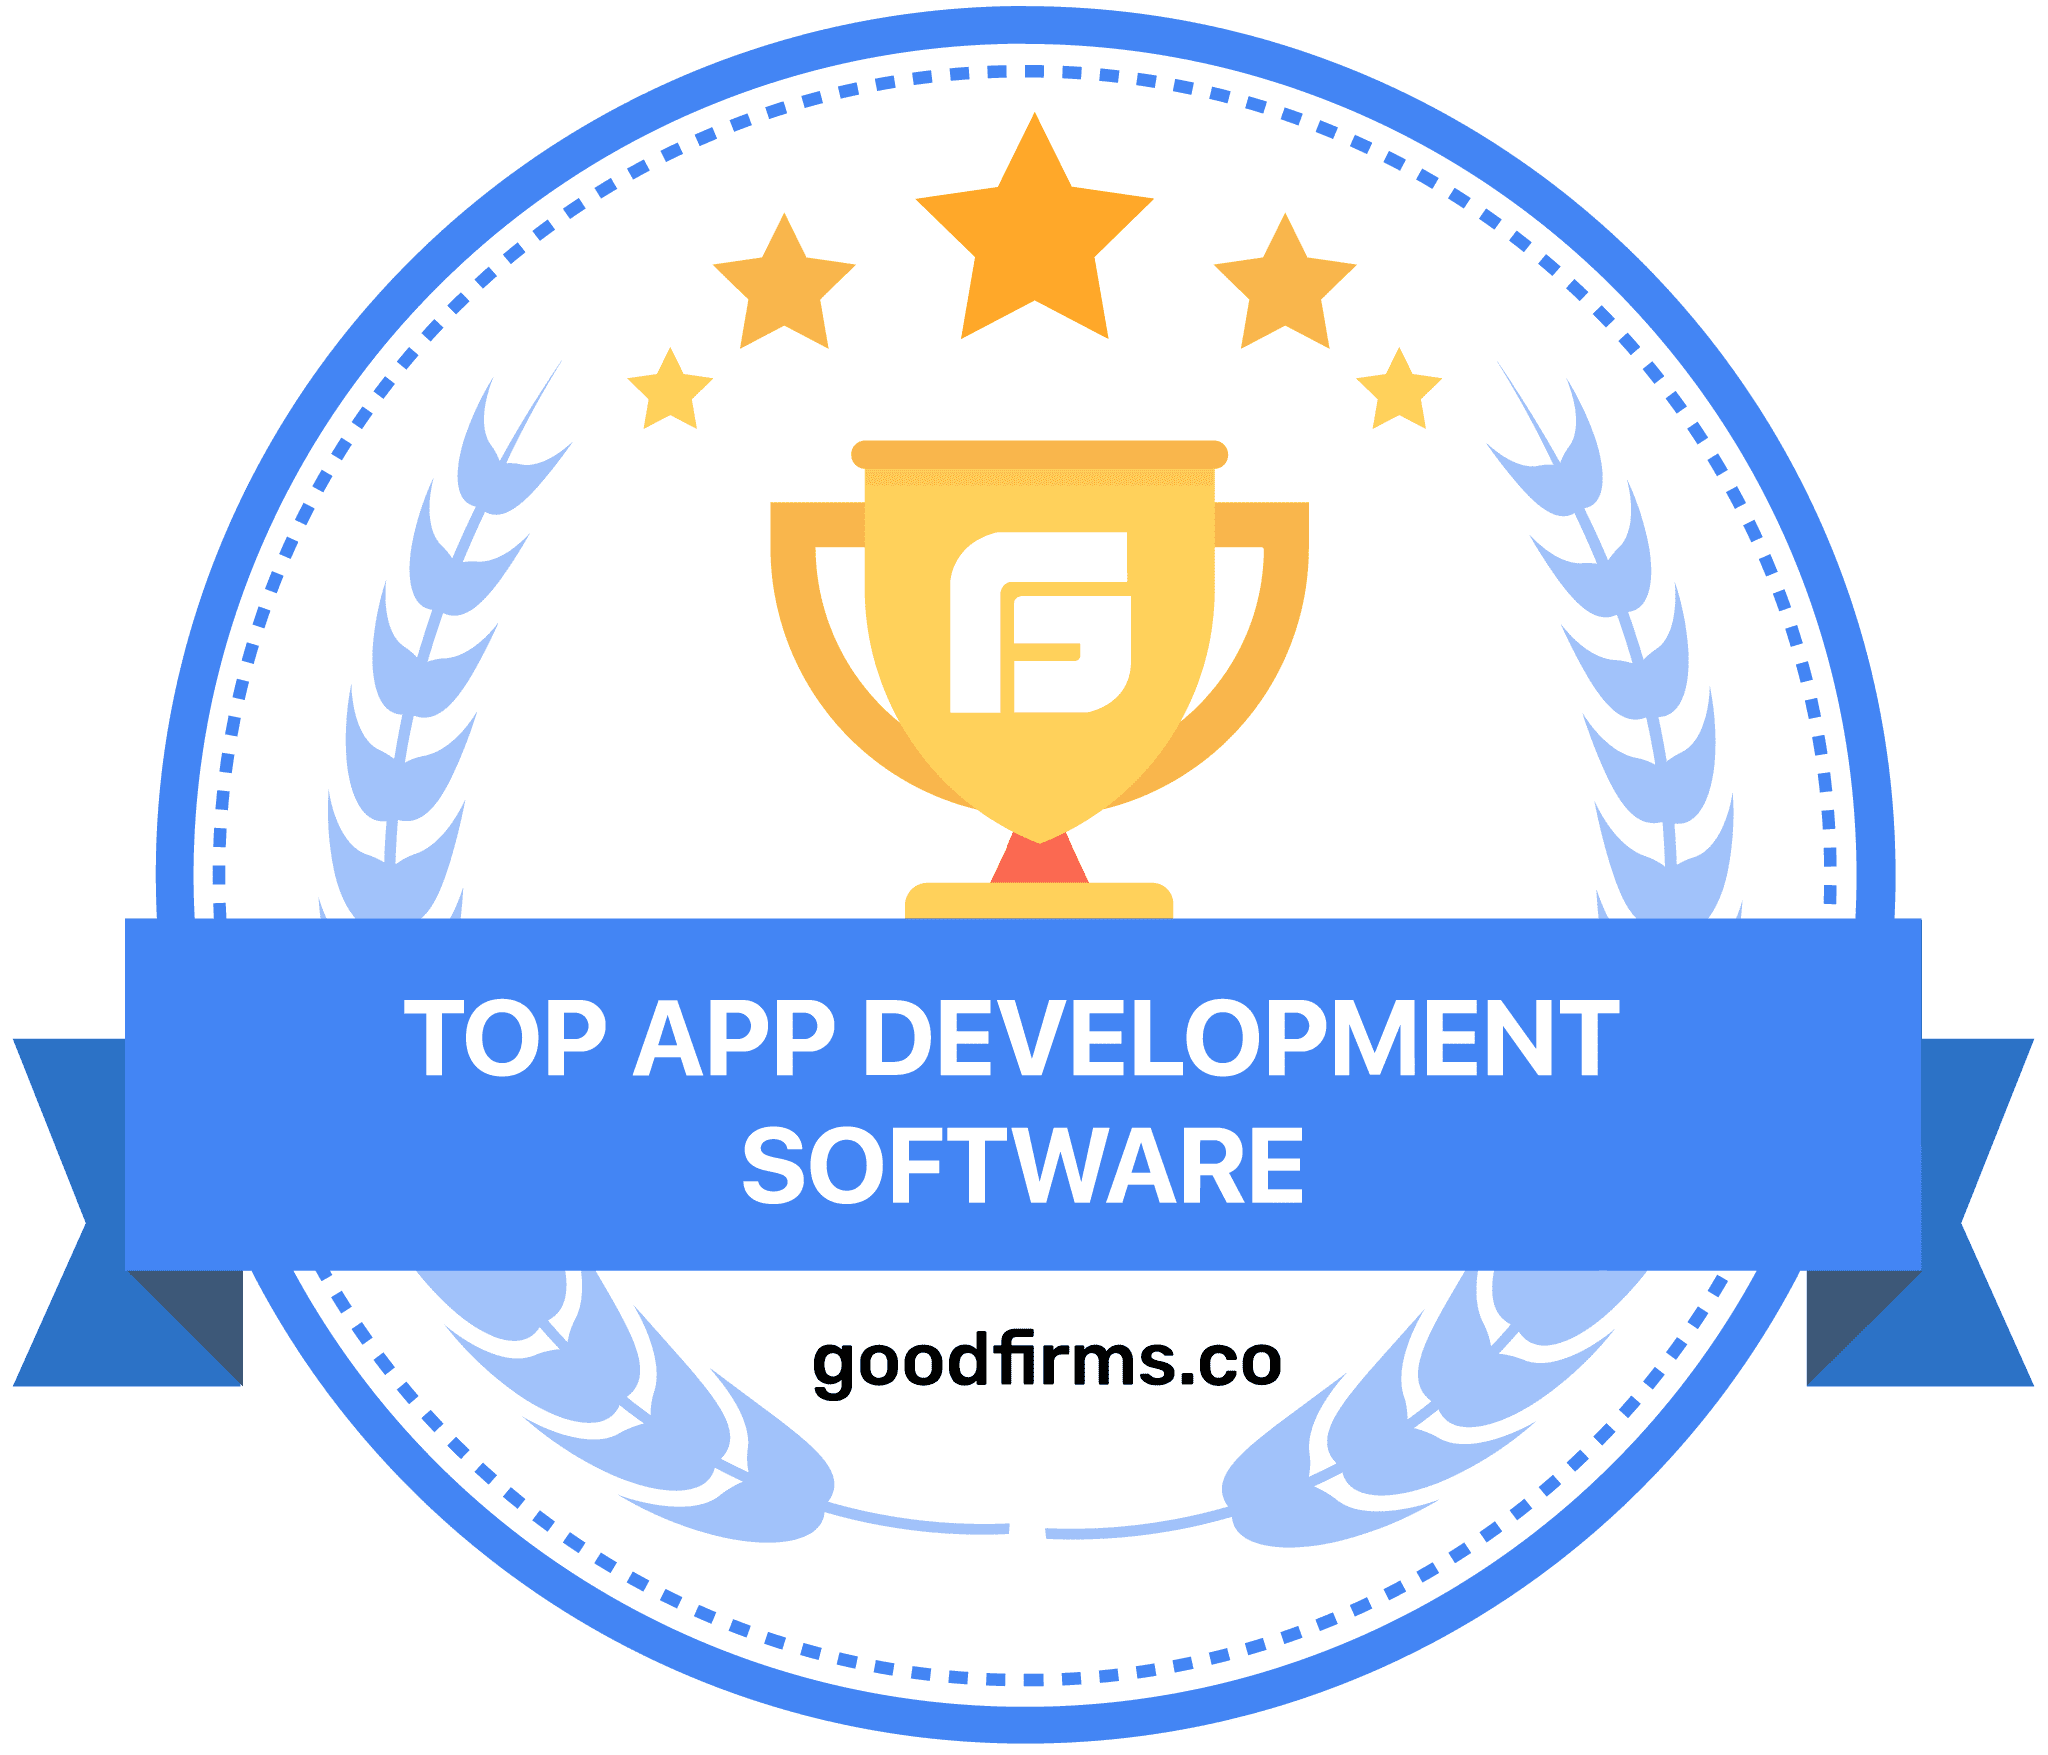 goodfirms app development